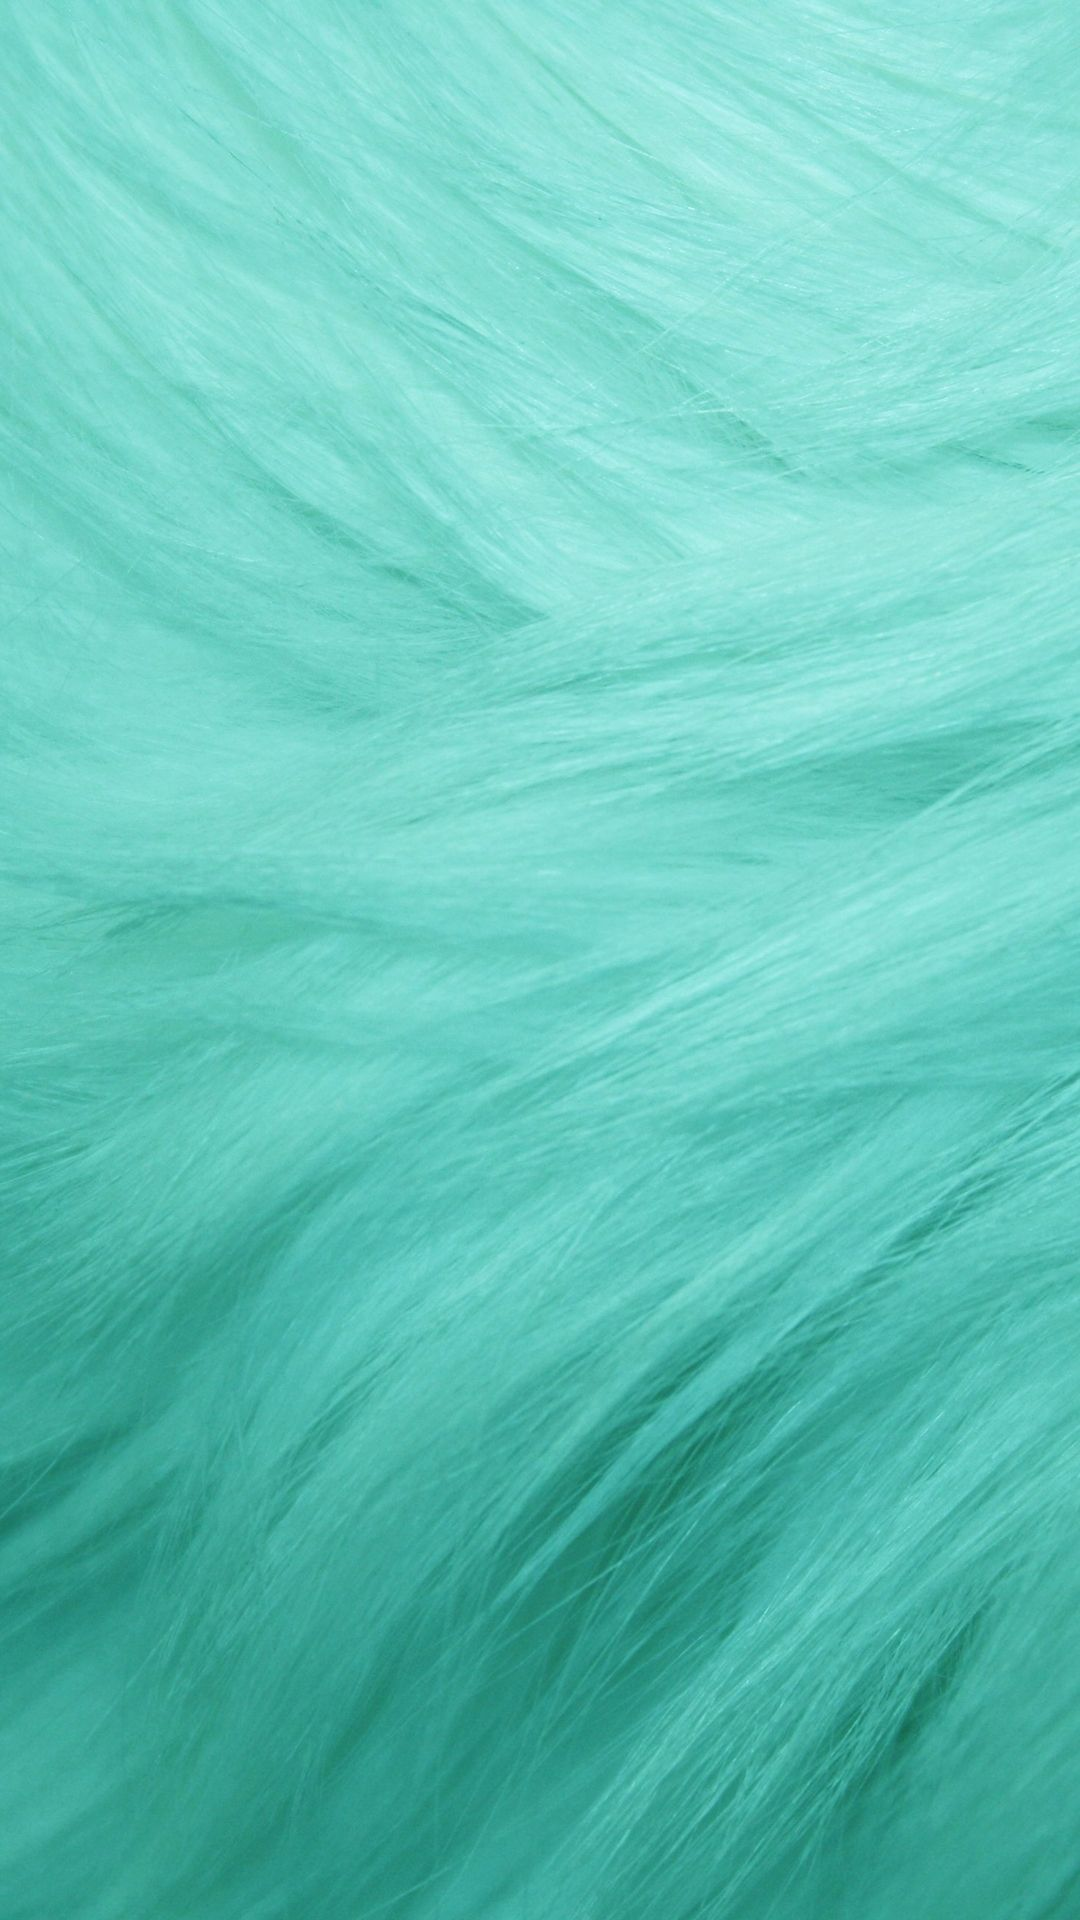 Teal Fur Texture Tap to see more fluffy wallpapers